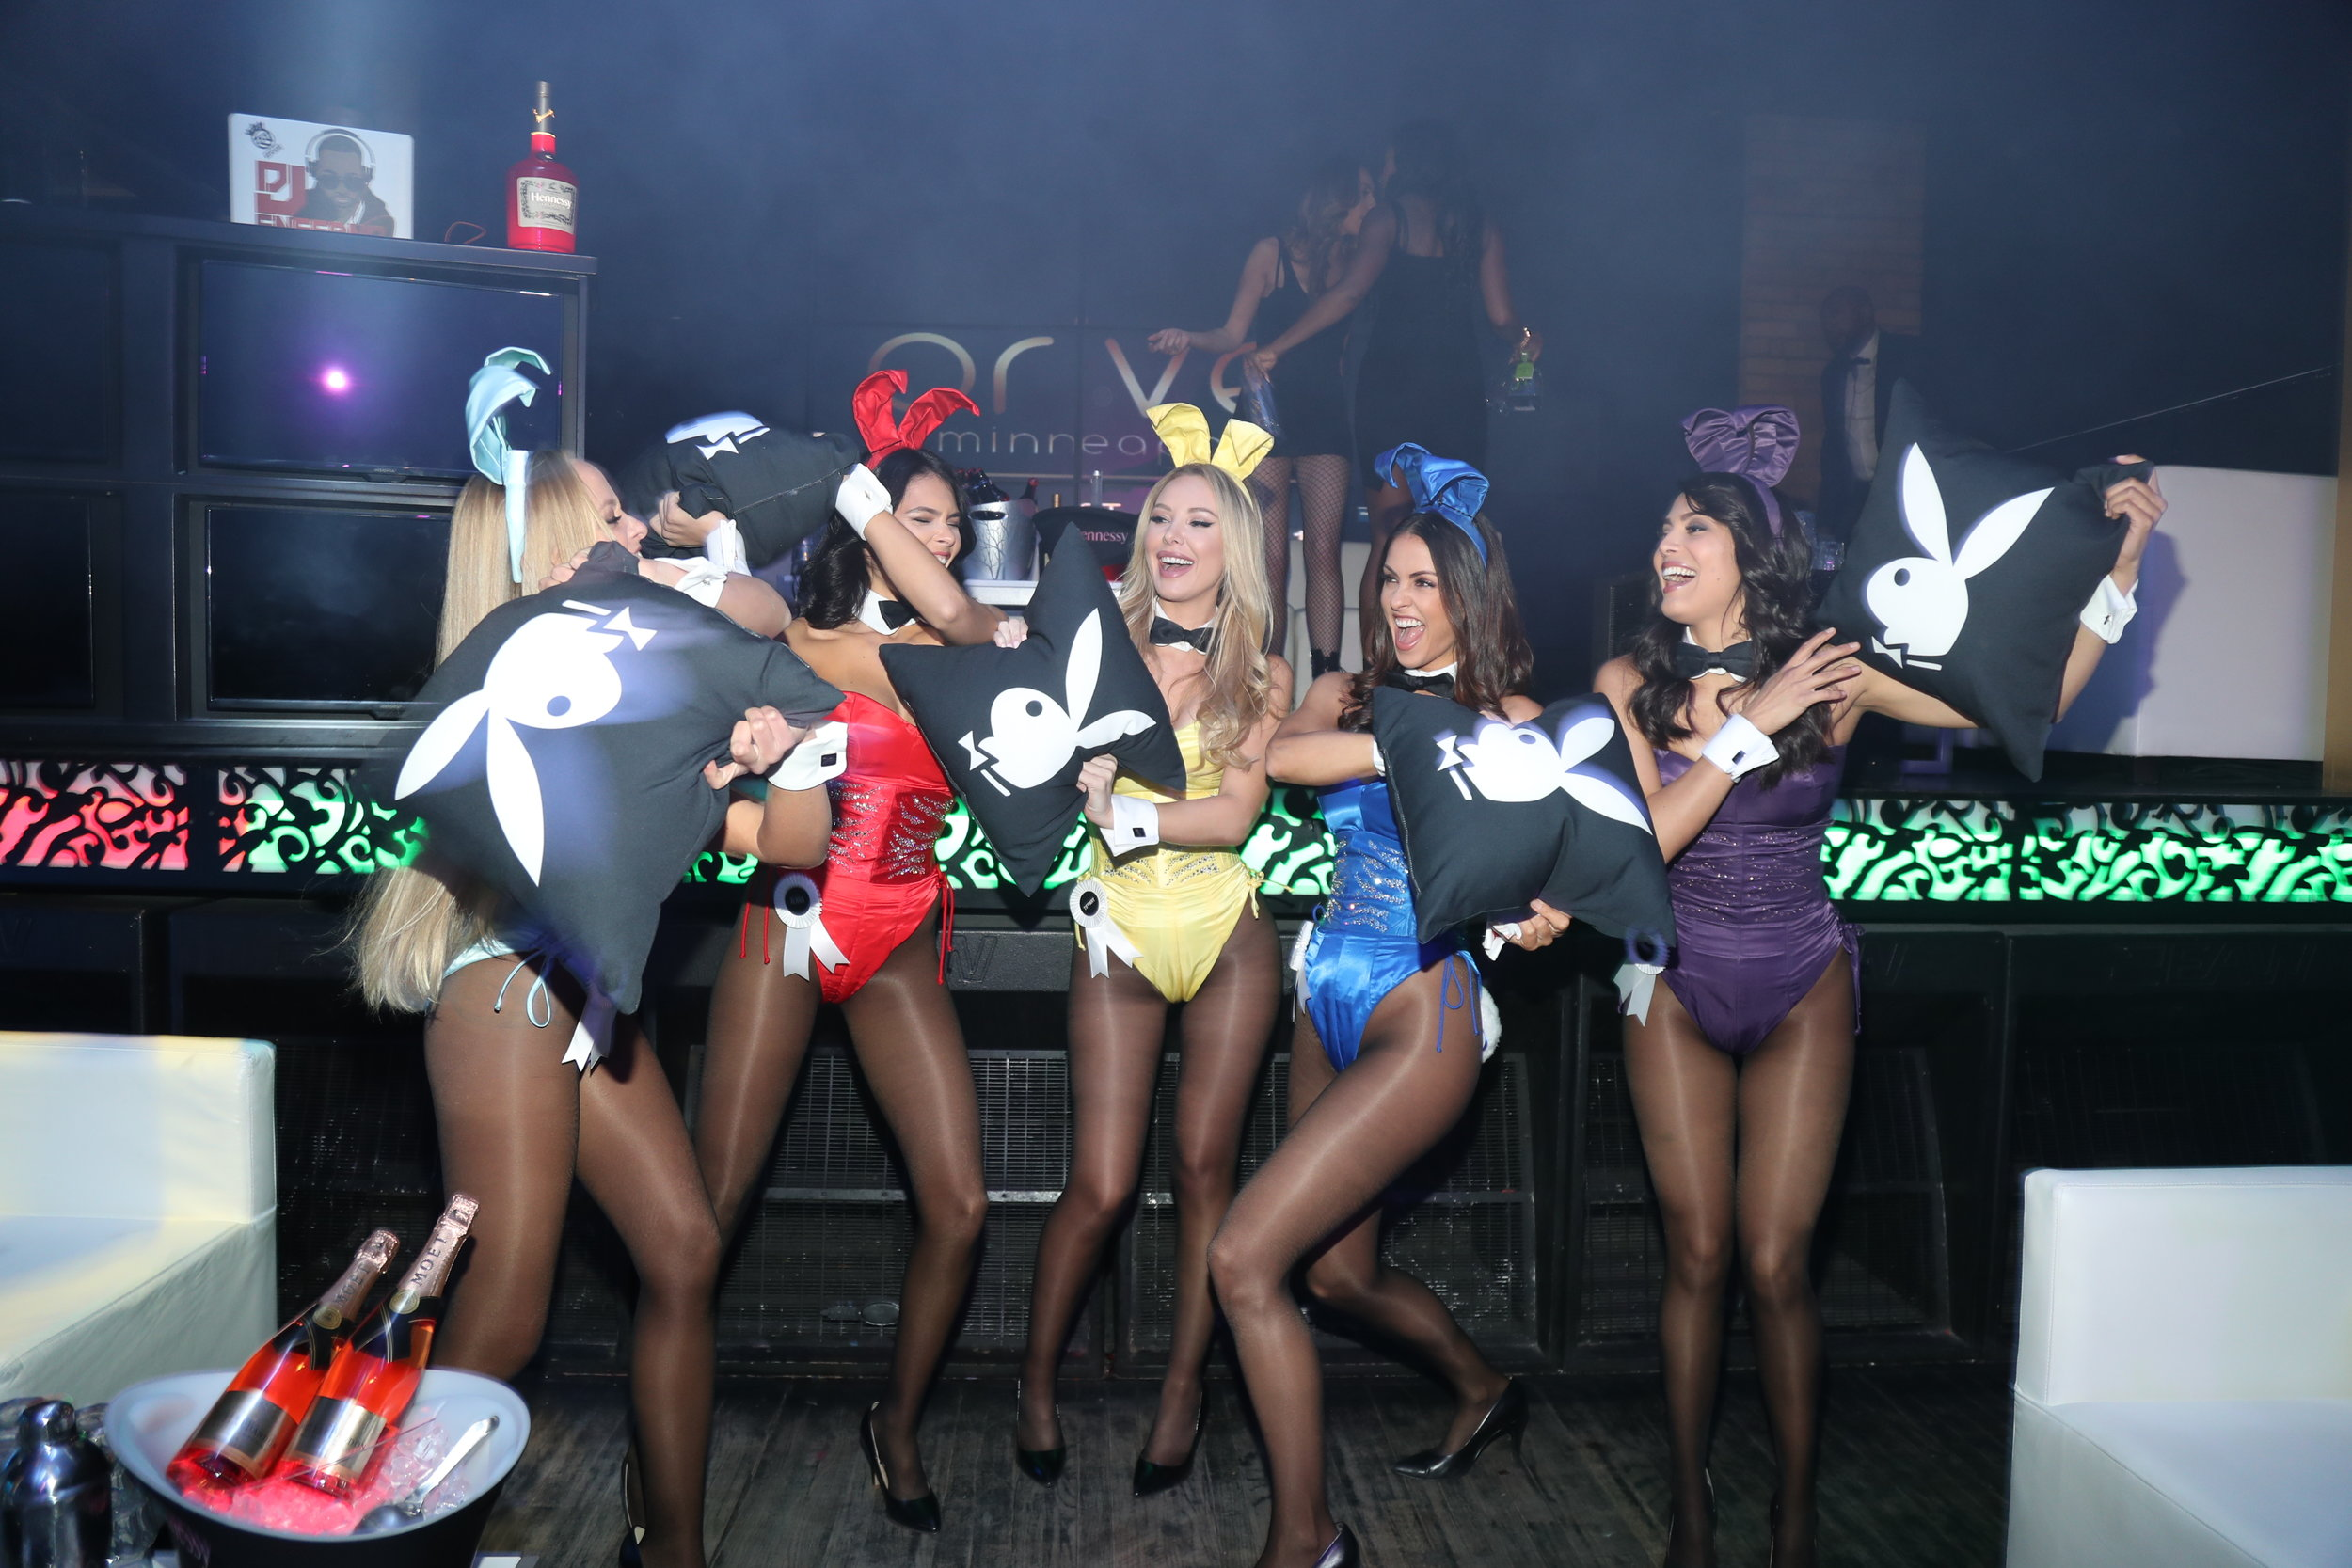 Playmates at Playboy's Big Game Party